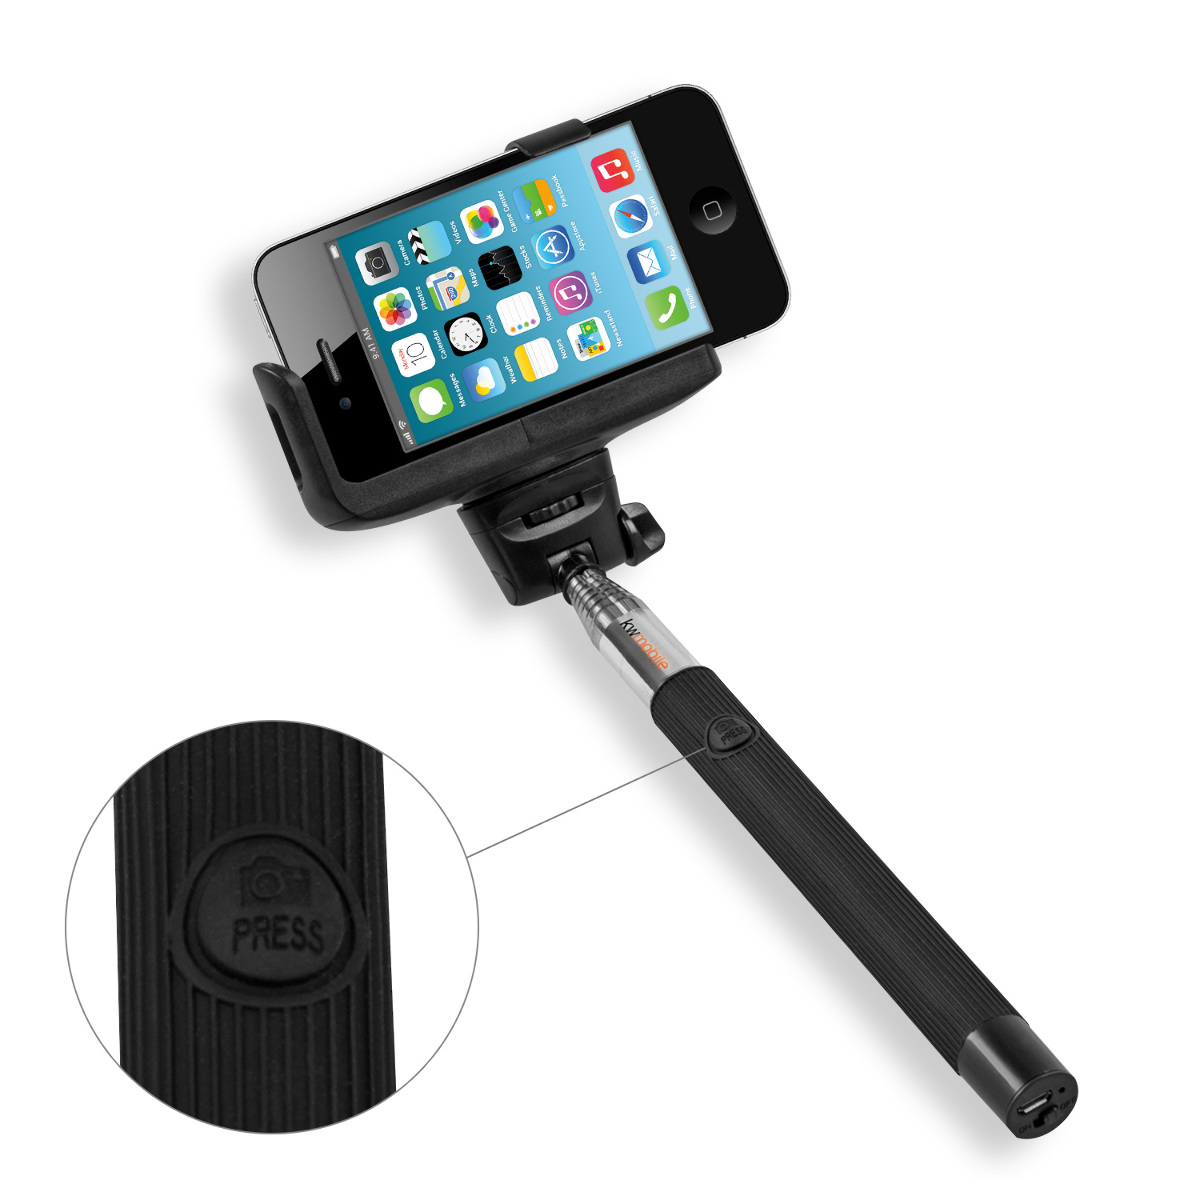 kwmobile monopod selfie stick mount bluetooth remote for apple iphone 4 4s ebay. Black Bedroom Furniture Sets. Home Design Ideas